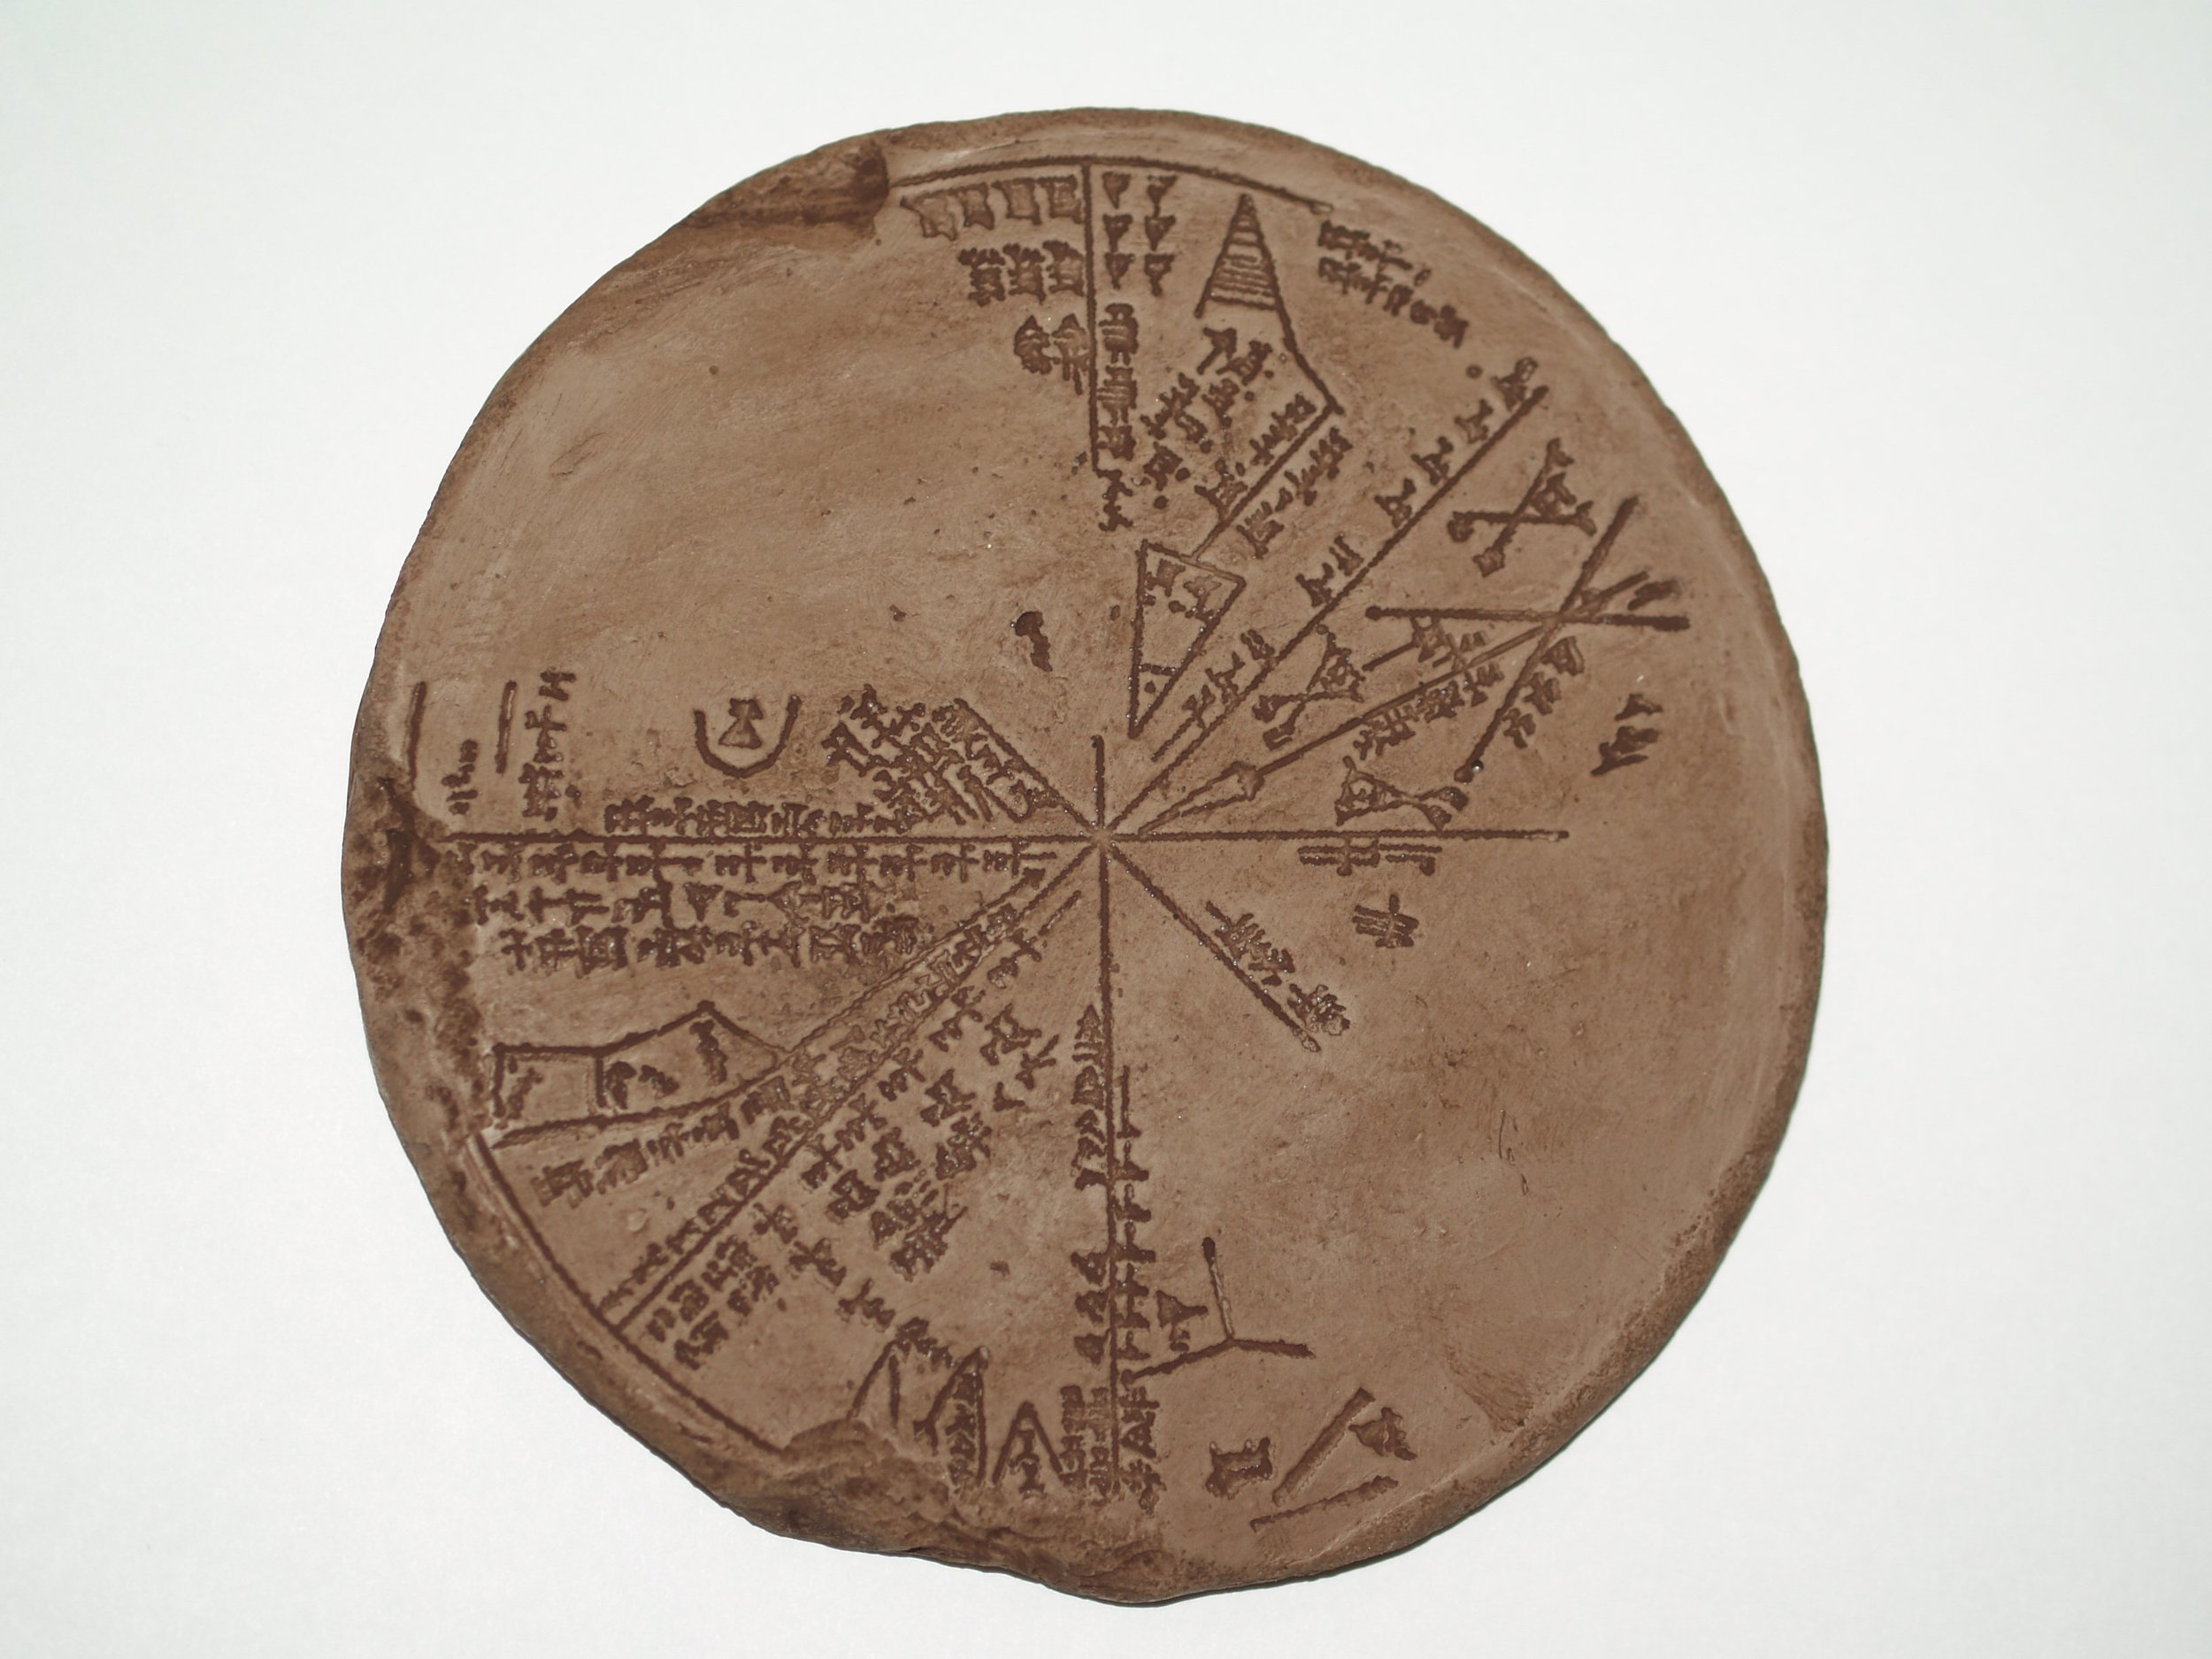 Our oldest recovered star chart - Clay Tablet K8538, c.a. 3120 B.C.E.